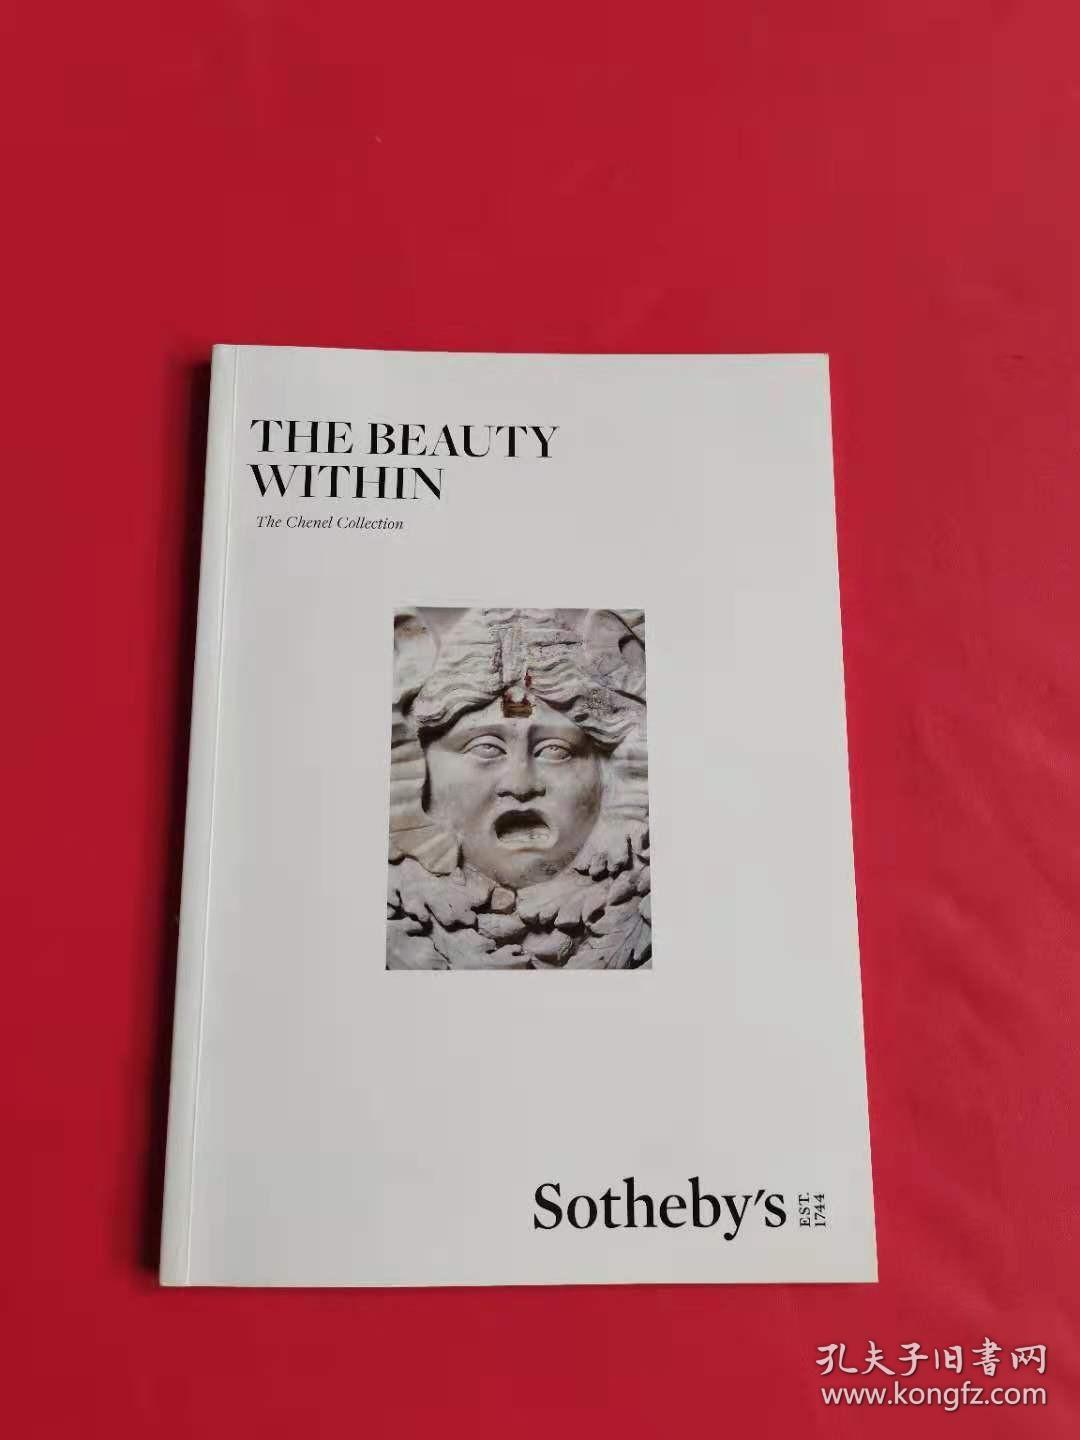 SOTHEBY`S苏富比 2020年  LONDON THE BEAUTY WITHIN The Chenel Collection